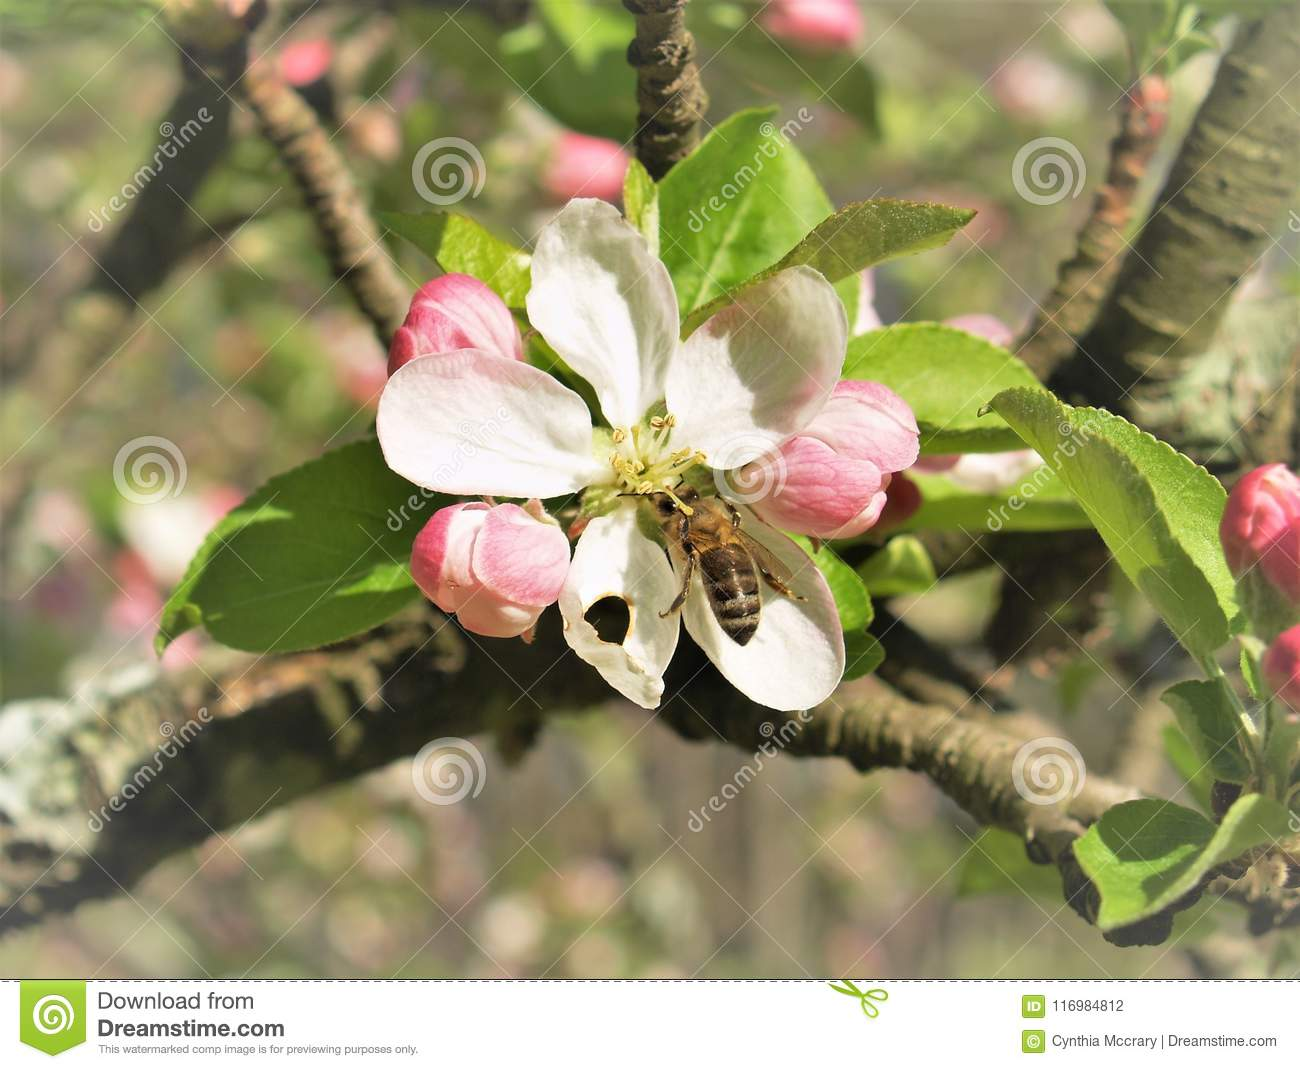 Bee on an Apple Blossom